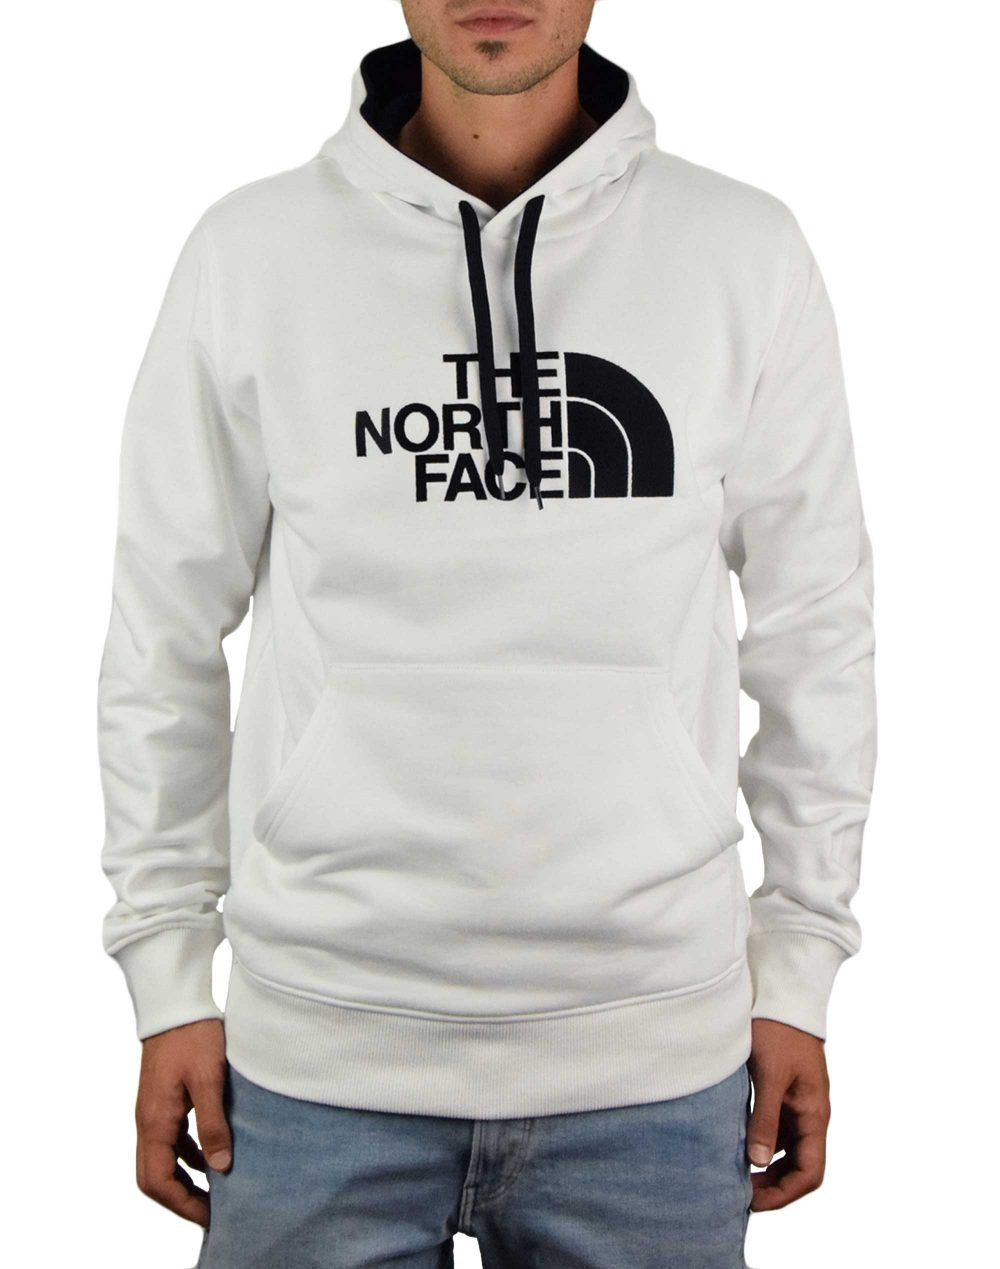 The North Face Drew Peak Pullover Hoodie (NF00AHJYLA91) White/Black